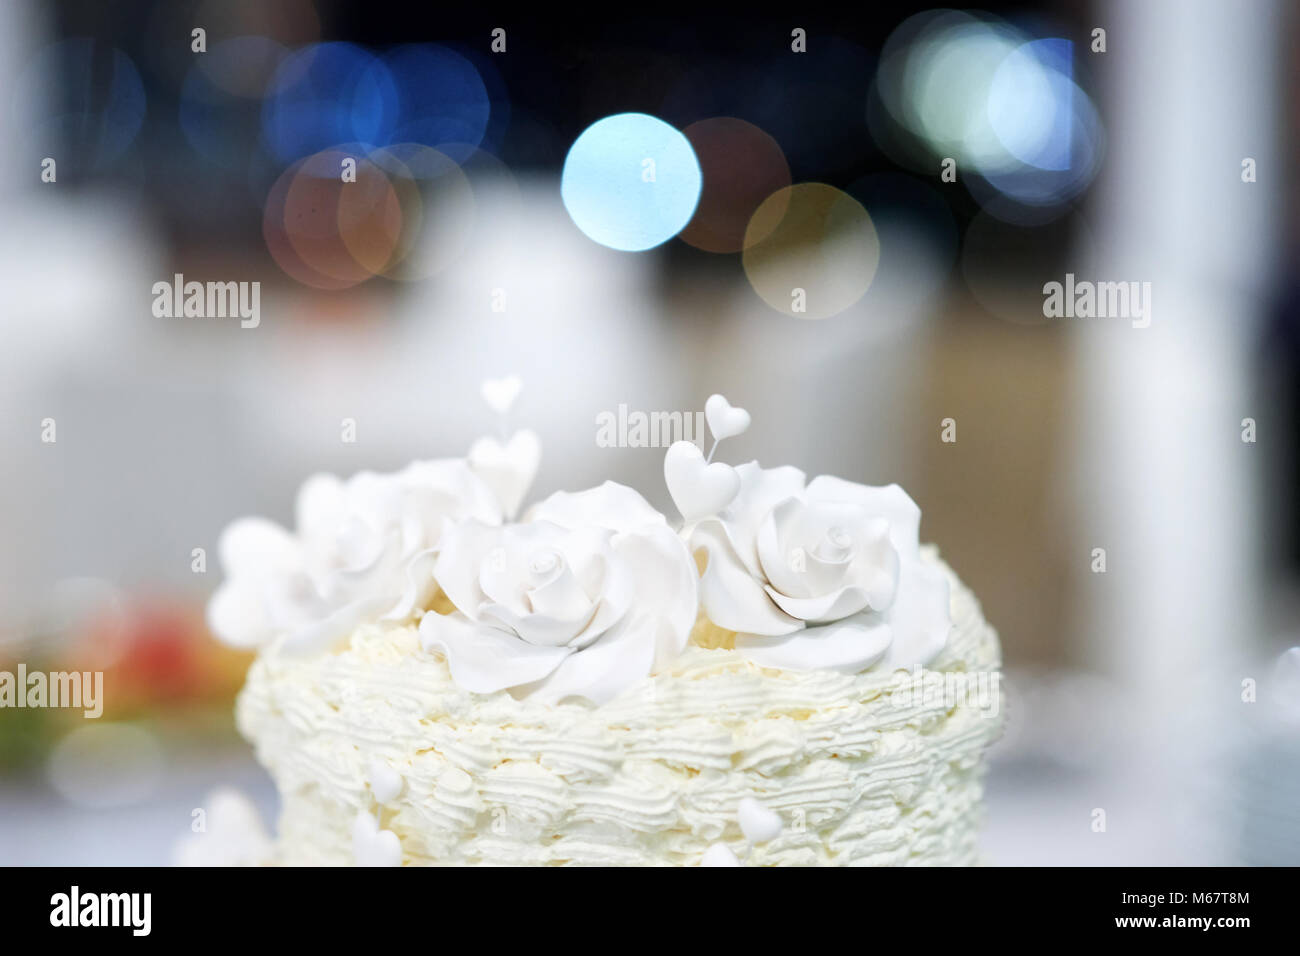 White wedding cake detail - marzipan decorative flowers and hearts - Stock Image